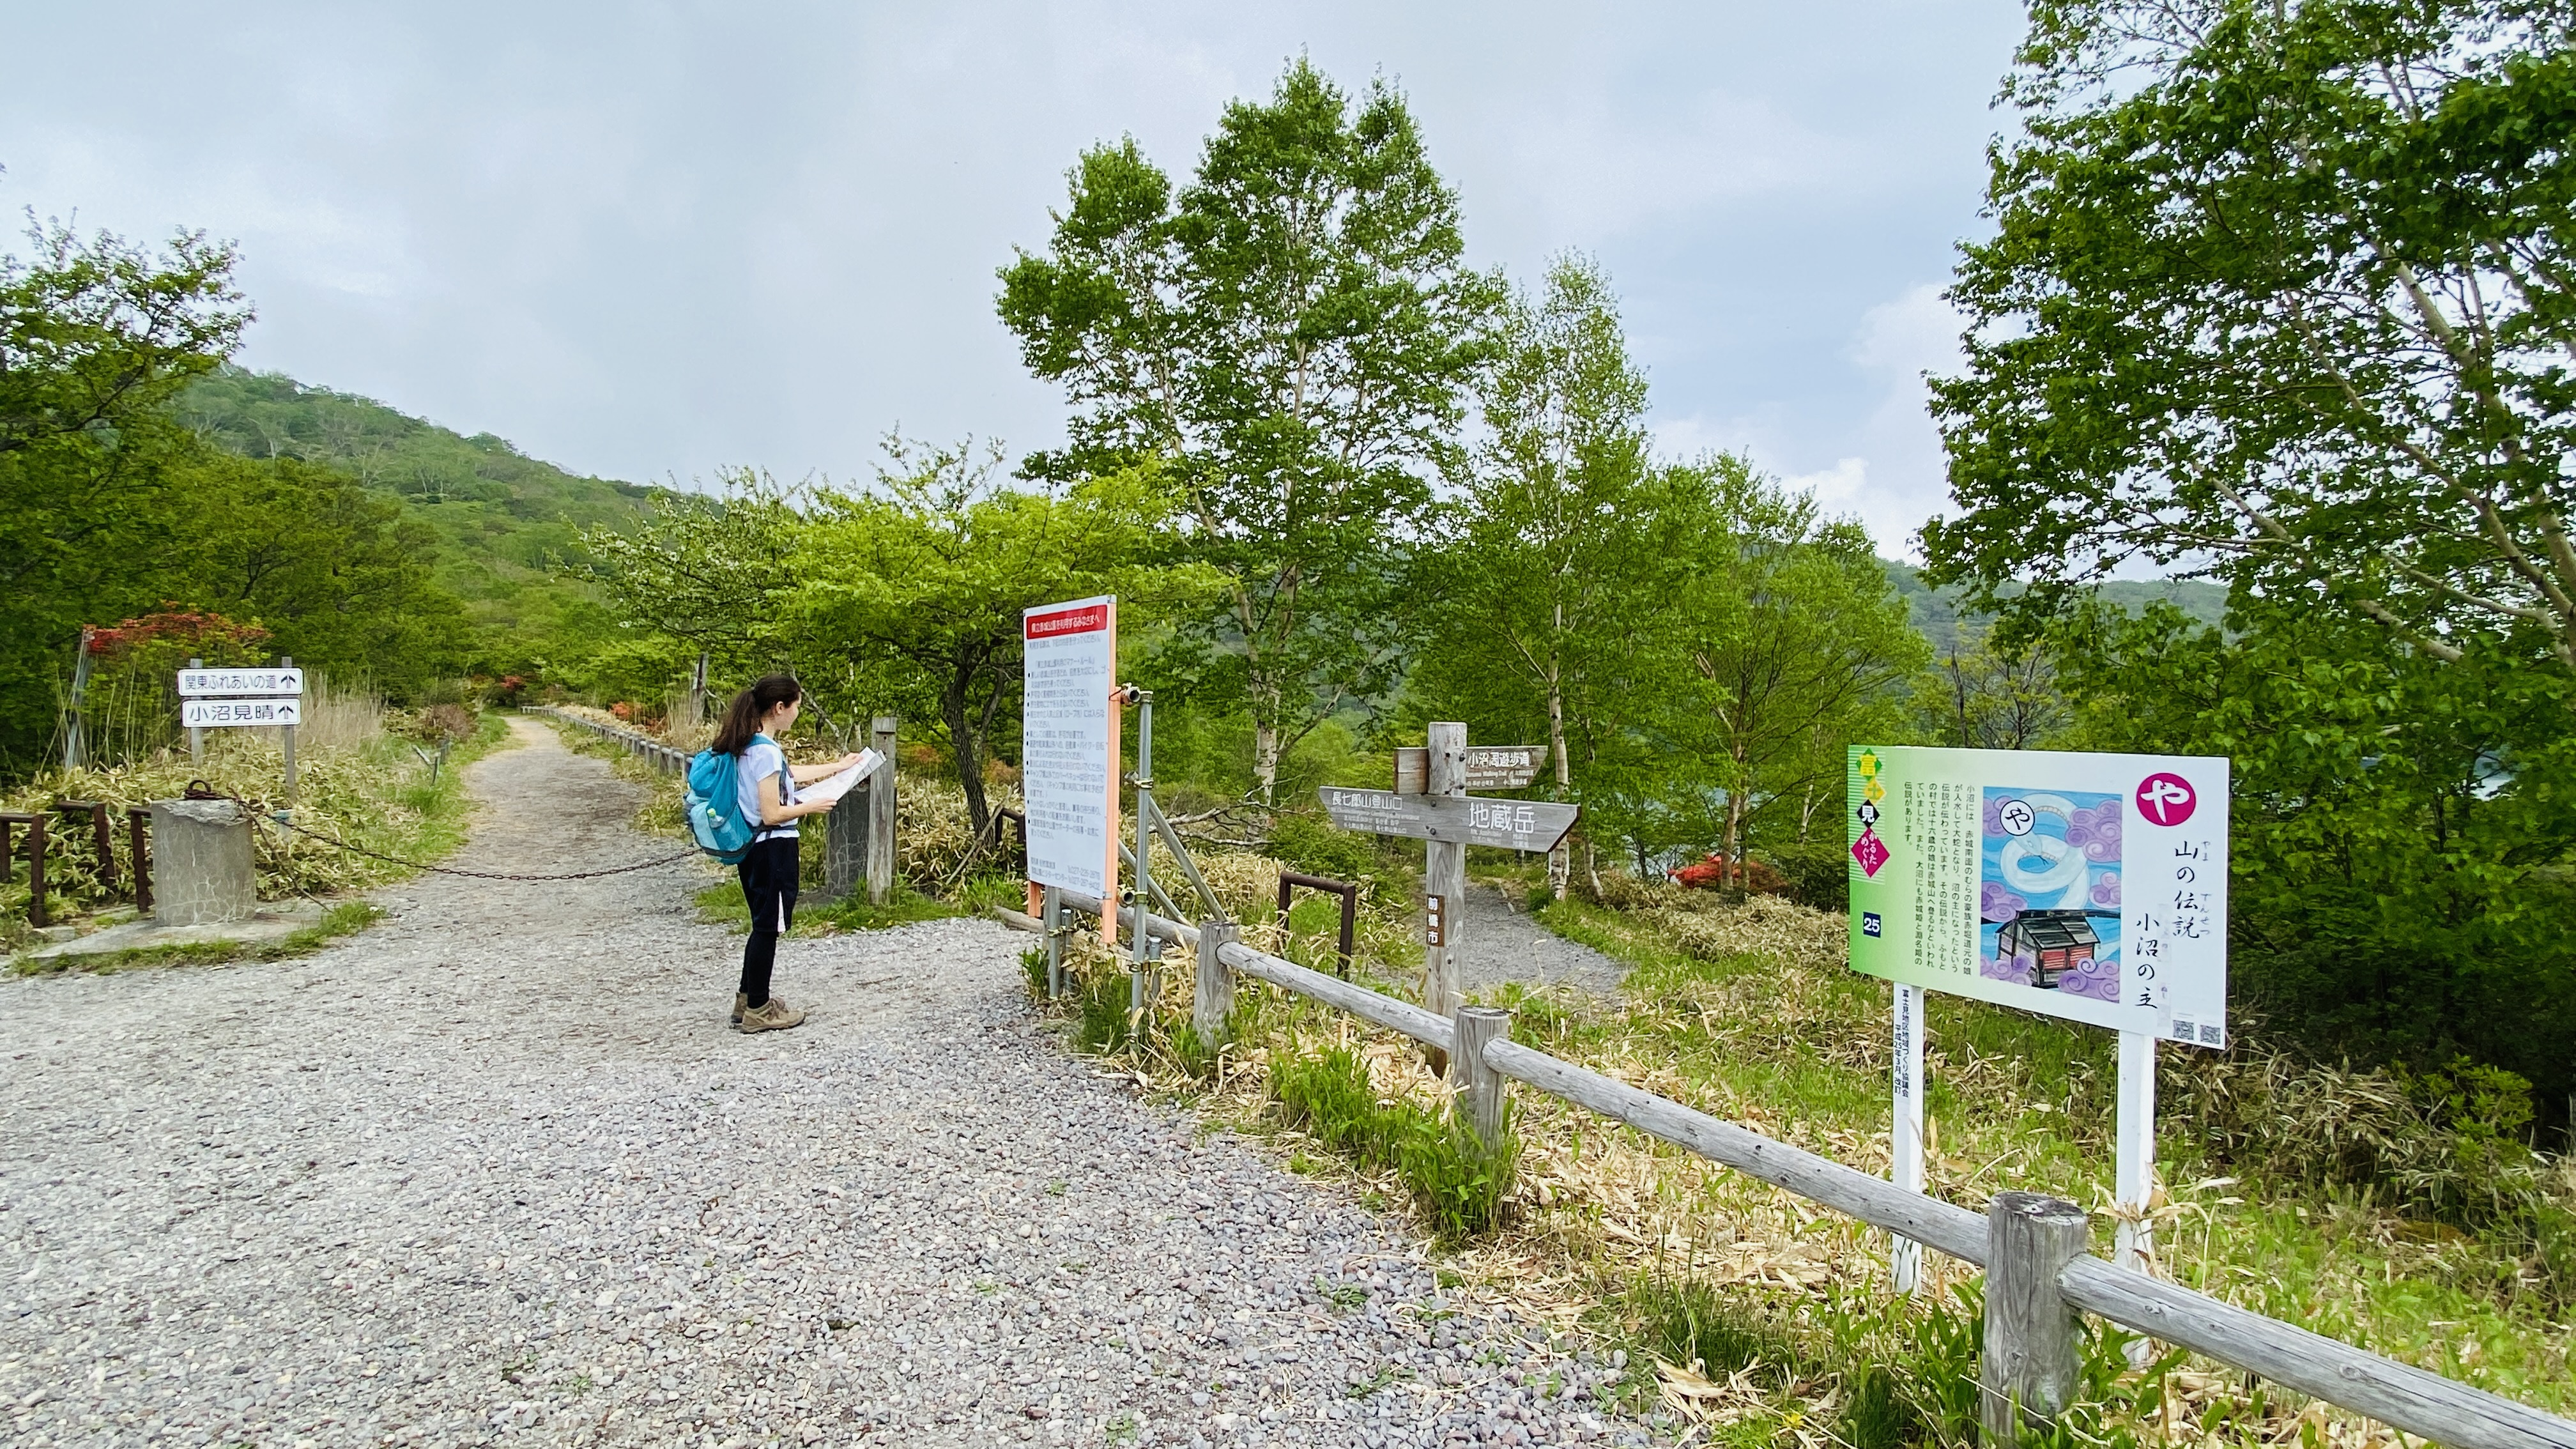 A hiker looks at a map next to two different trails